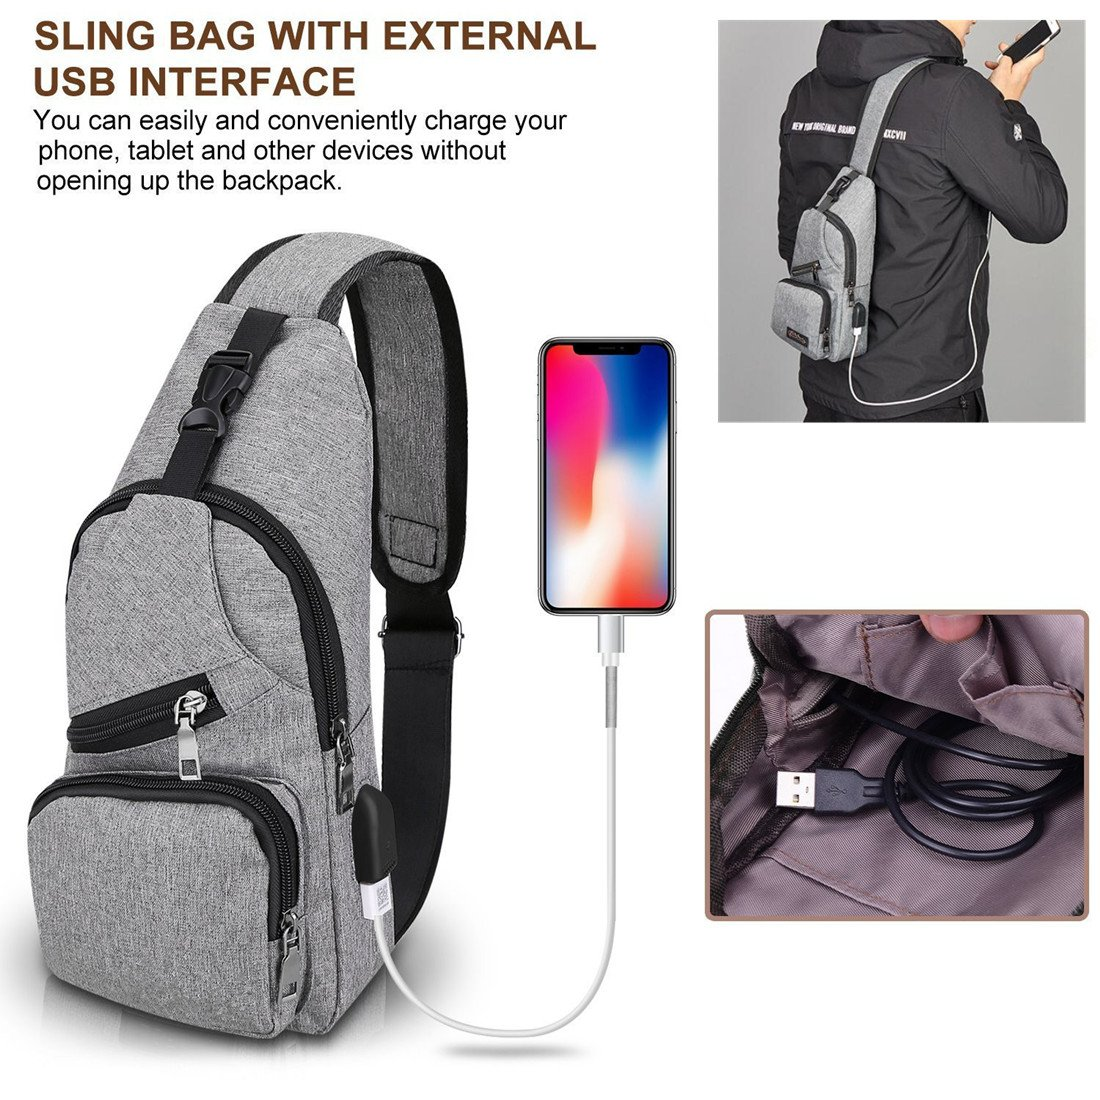 d6827143741 Amazon.com   Sling Shoulder Crossbody Chest Bag for Men Women Lightweight  Hiking Travel Backpack Daypack with USB Charging Port(Grey)   Sports    Outdoors